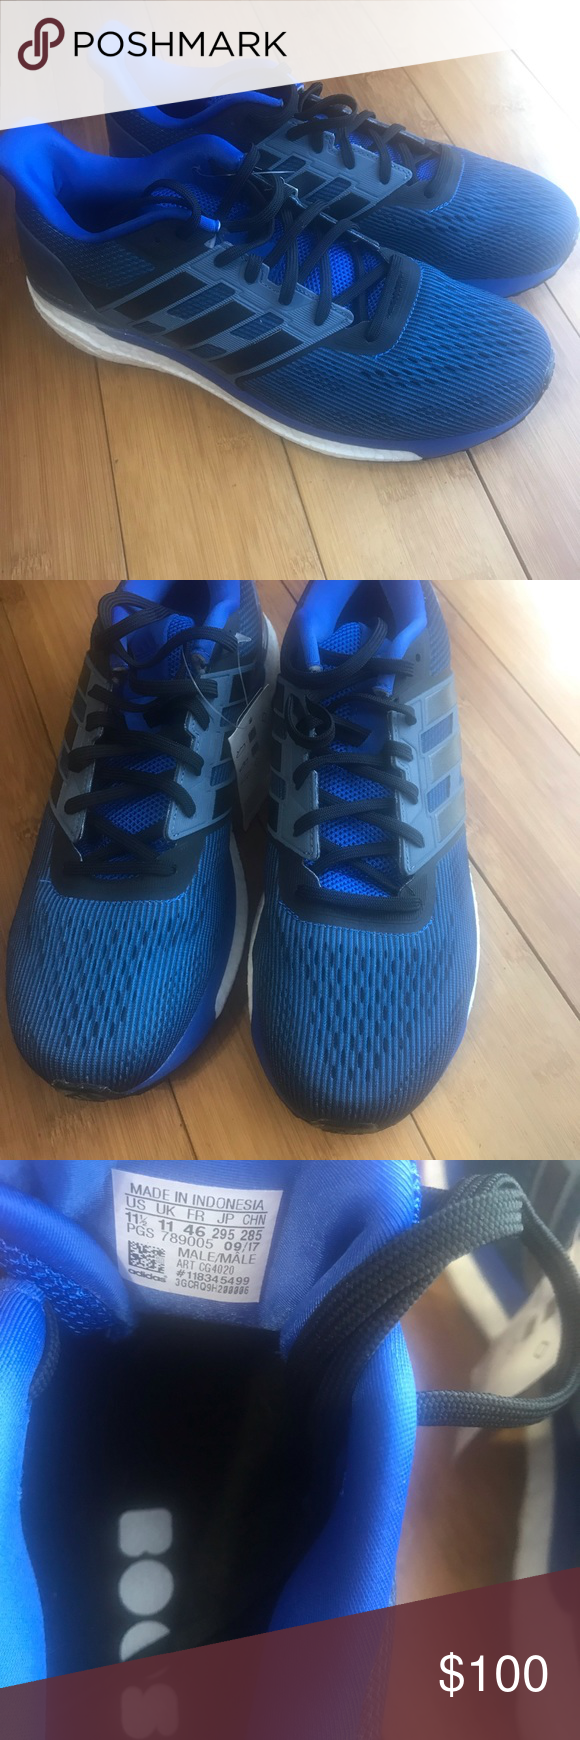 Adidas Mens Supernova Running Shoes Adidas Mens Supernova Running Shoes  size 11.5 new ships without box blue and black adidas Shoes Athletic Shoes 44d98f469